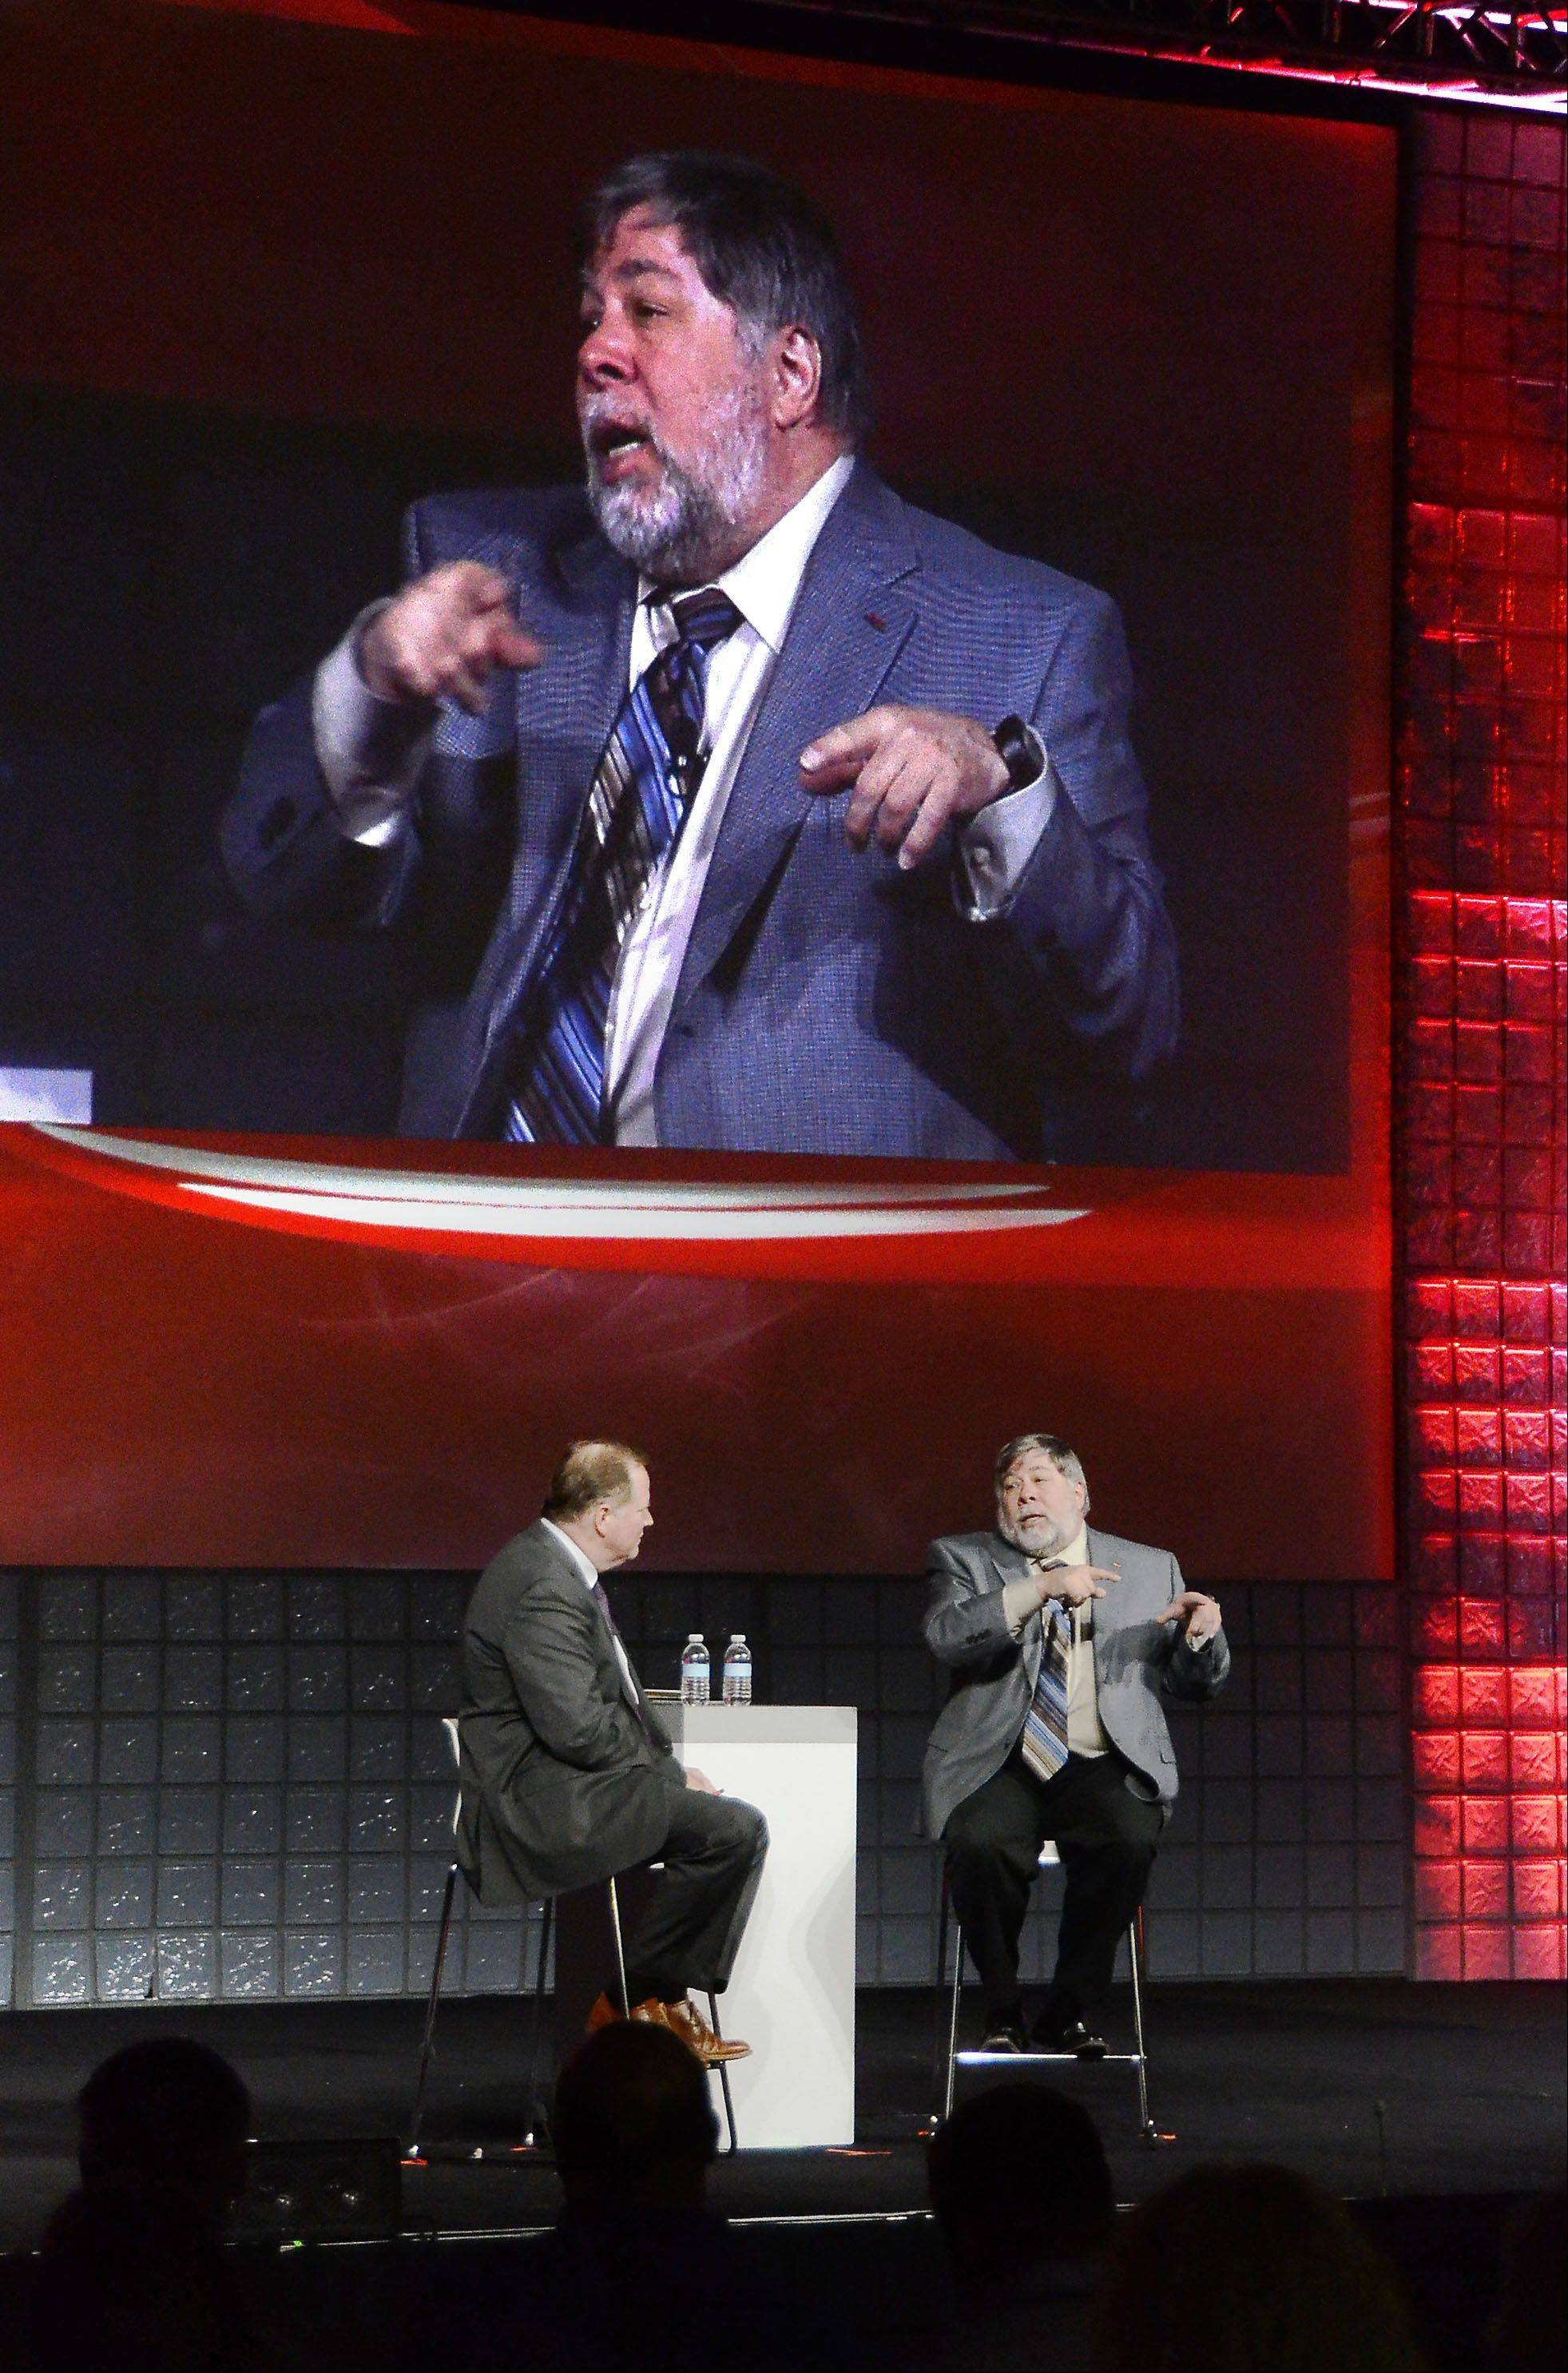 Steve Wozniak, right, inventor of the Apple I and Apple II computer and co-founder of Apple Computer with the late Steve Jobs, talks with Brett Schockley, Avaya senior vice president and general manager of applications and emerging technologies, at the Avaya Evolutions conference Thursday at the Schaumburg Convention Center.